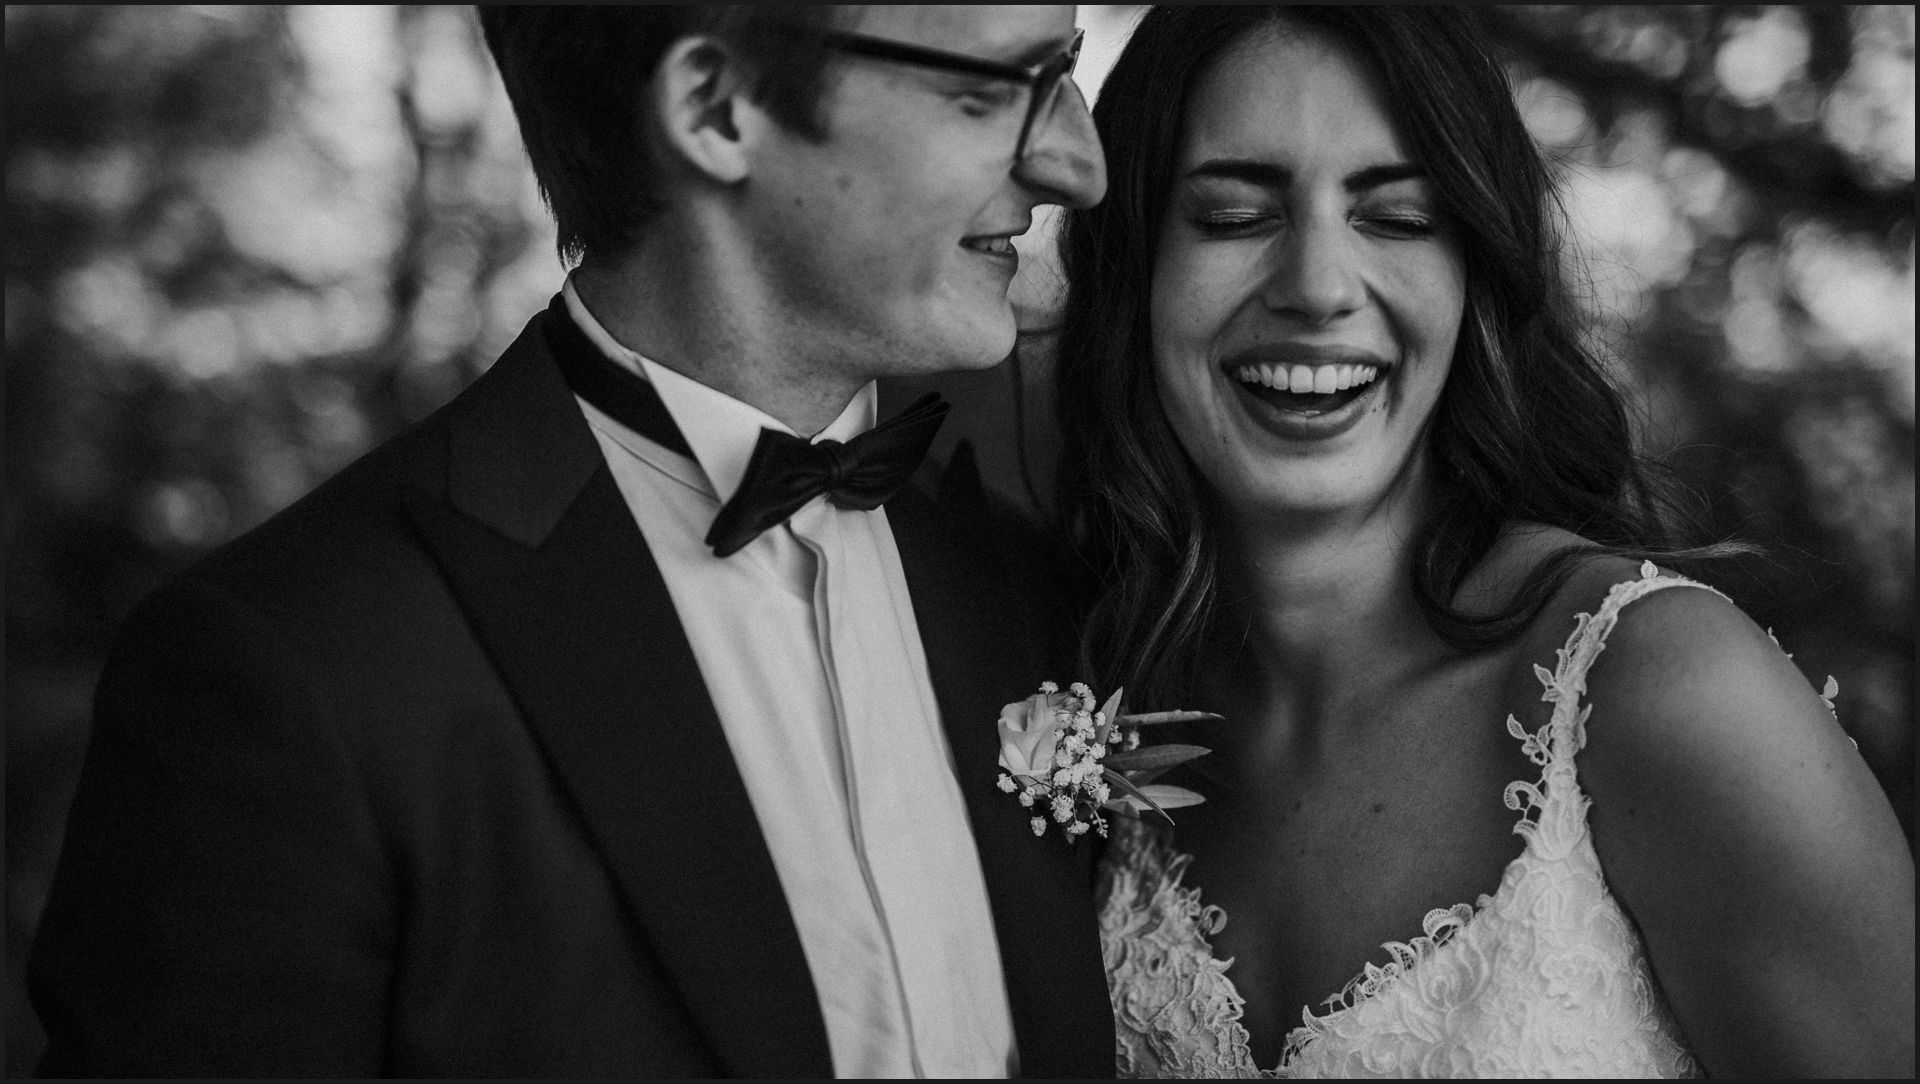 black and white, wedding, umbria, nikis resort, bride, groom, smile, candid, funny